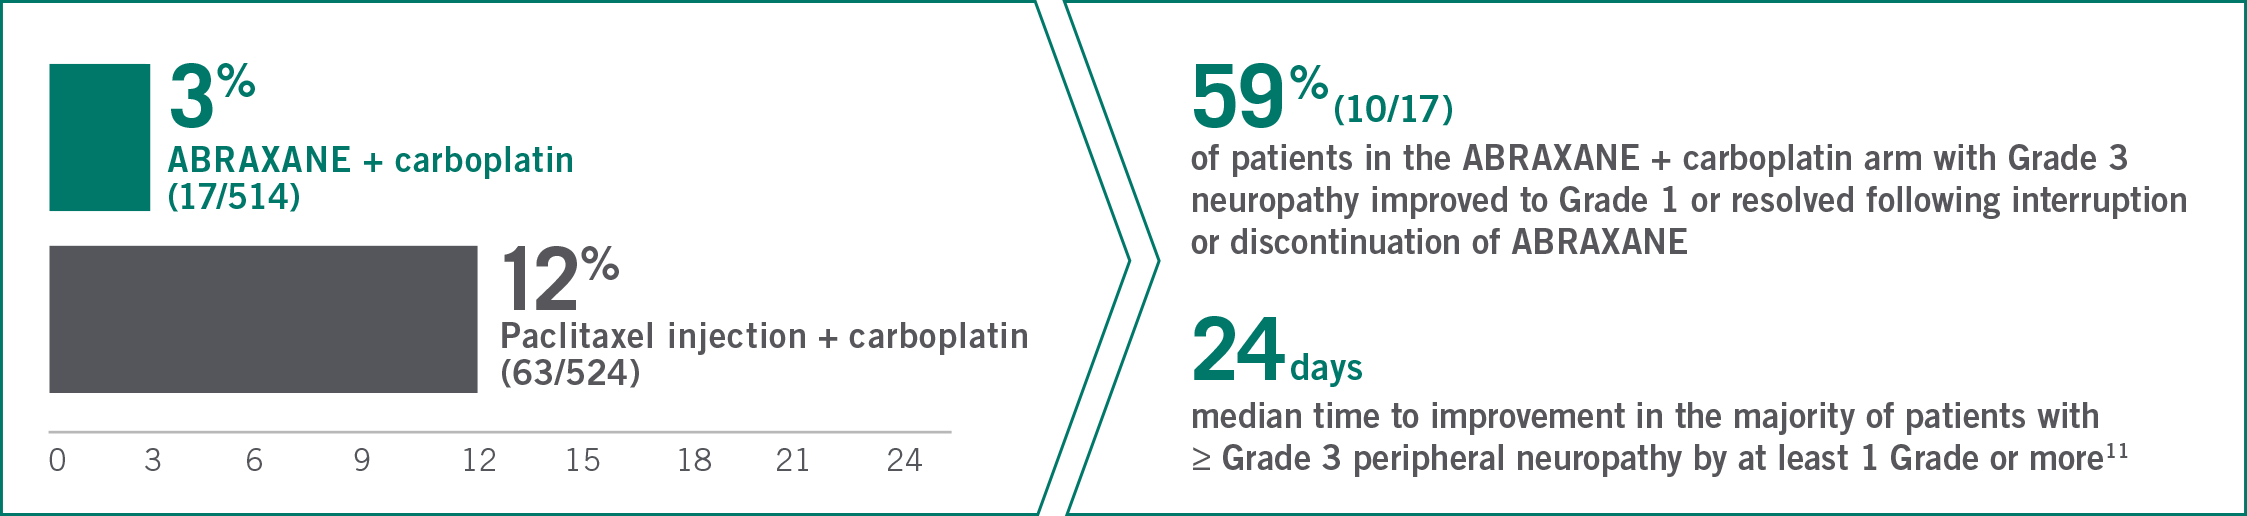 In the Phase III study, 3% of patients in the ABRAXANE + carboplatin arm (17/514) experienced Grade 3 peripheral neuropathy vs 12% of patients in the paclitaxel injection + carboplatin arm (63/524). 59% (10/17) of patients in the ABRAXANE + carboplatin arm with Grade 3 neuropathy improved to Grade 1 or resolved following interruption or discontinuation of ABRAXANE. 24 days was the median time to improvement in the majority of patients with ≥ Grade 3 peripheral neuropathy by at least 1 Grade or more.